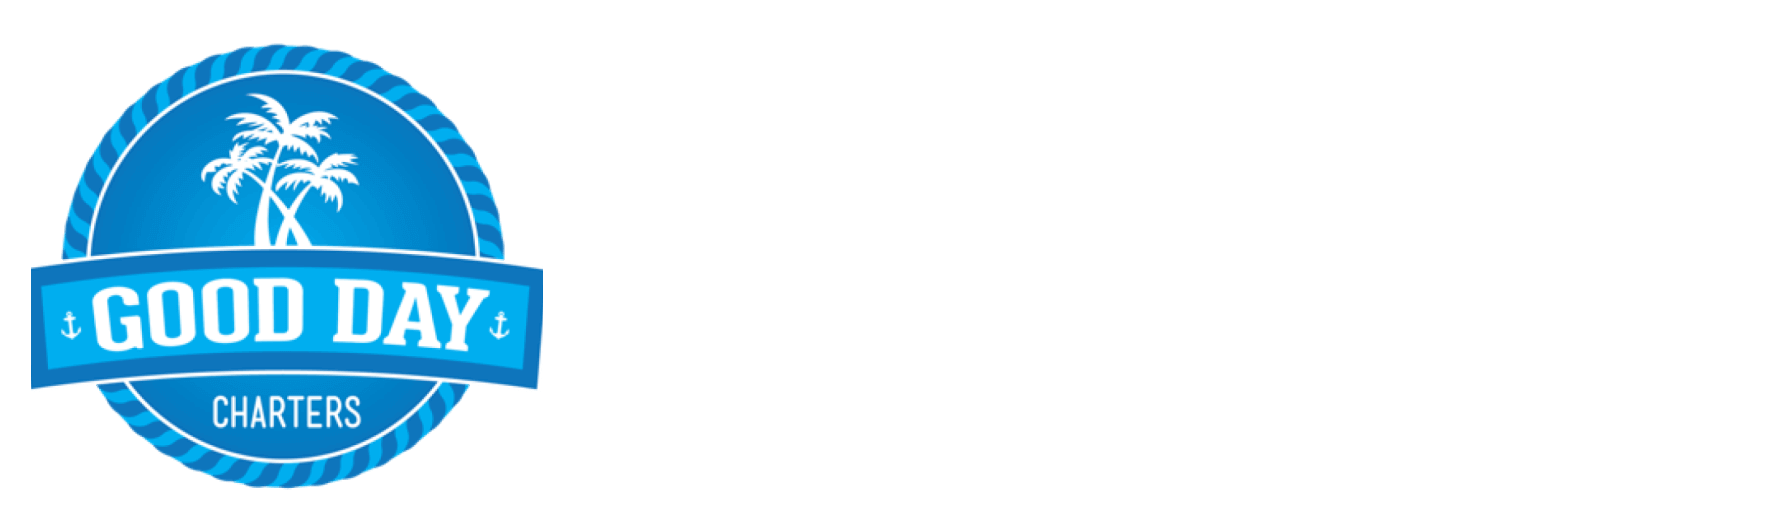 Your Boat. Your Way. Your Day.